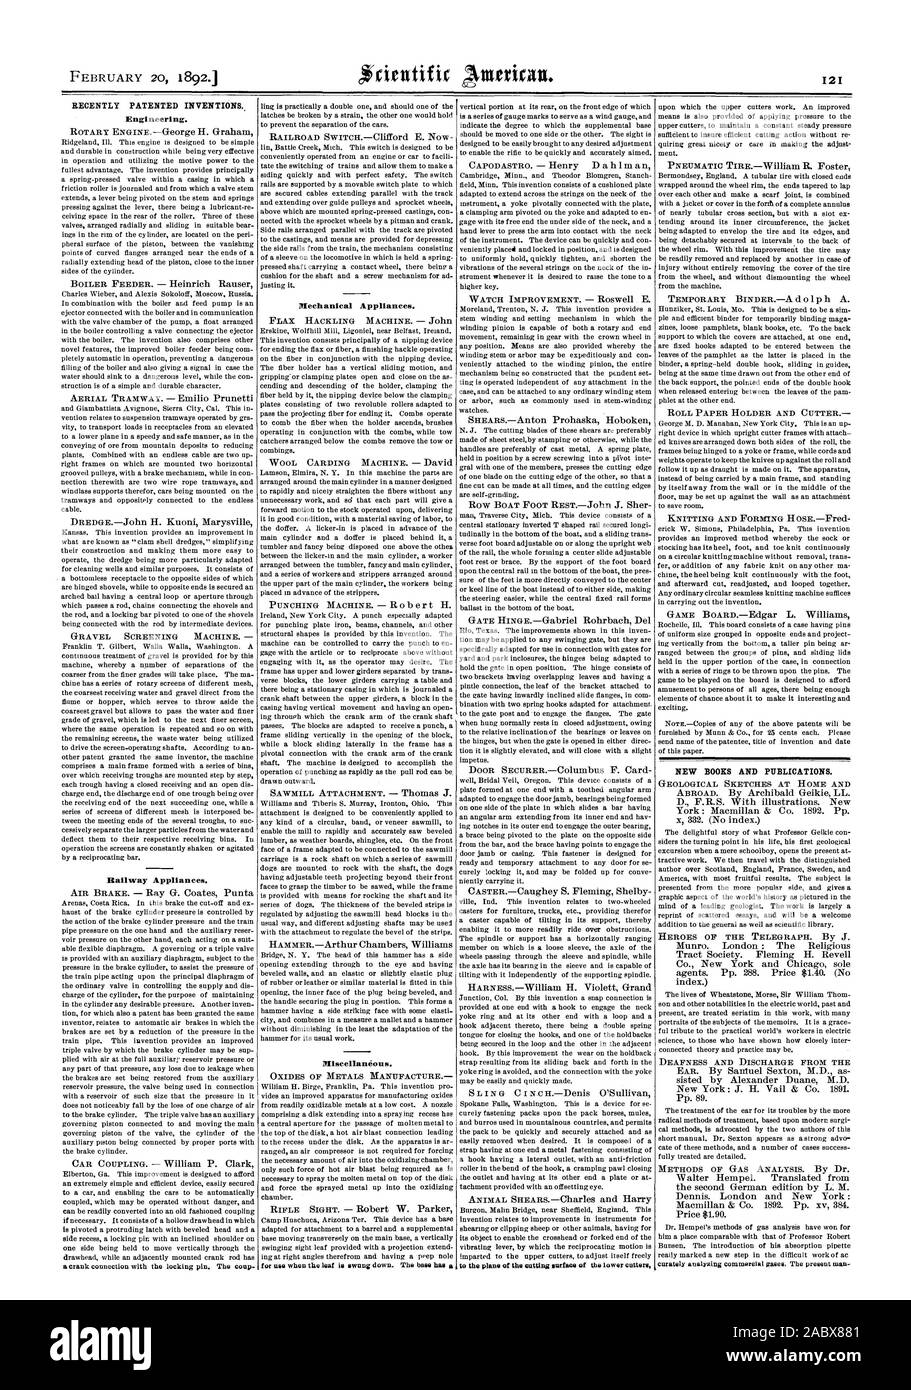 RECENTLY PATENTED INVENTIONS Engineering. Railway Appliances. Mechanical Appliances. Miscellaneous. NEW BOOKS AND PUBLICATIONS., scientific american, 1892-02-20 Stock Photo